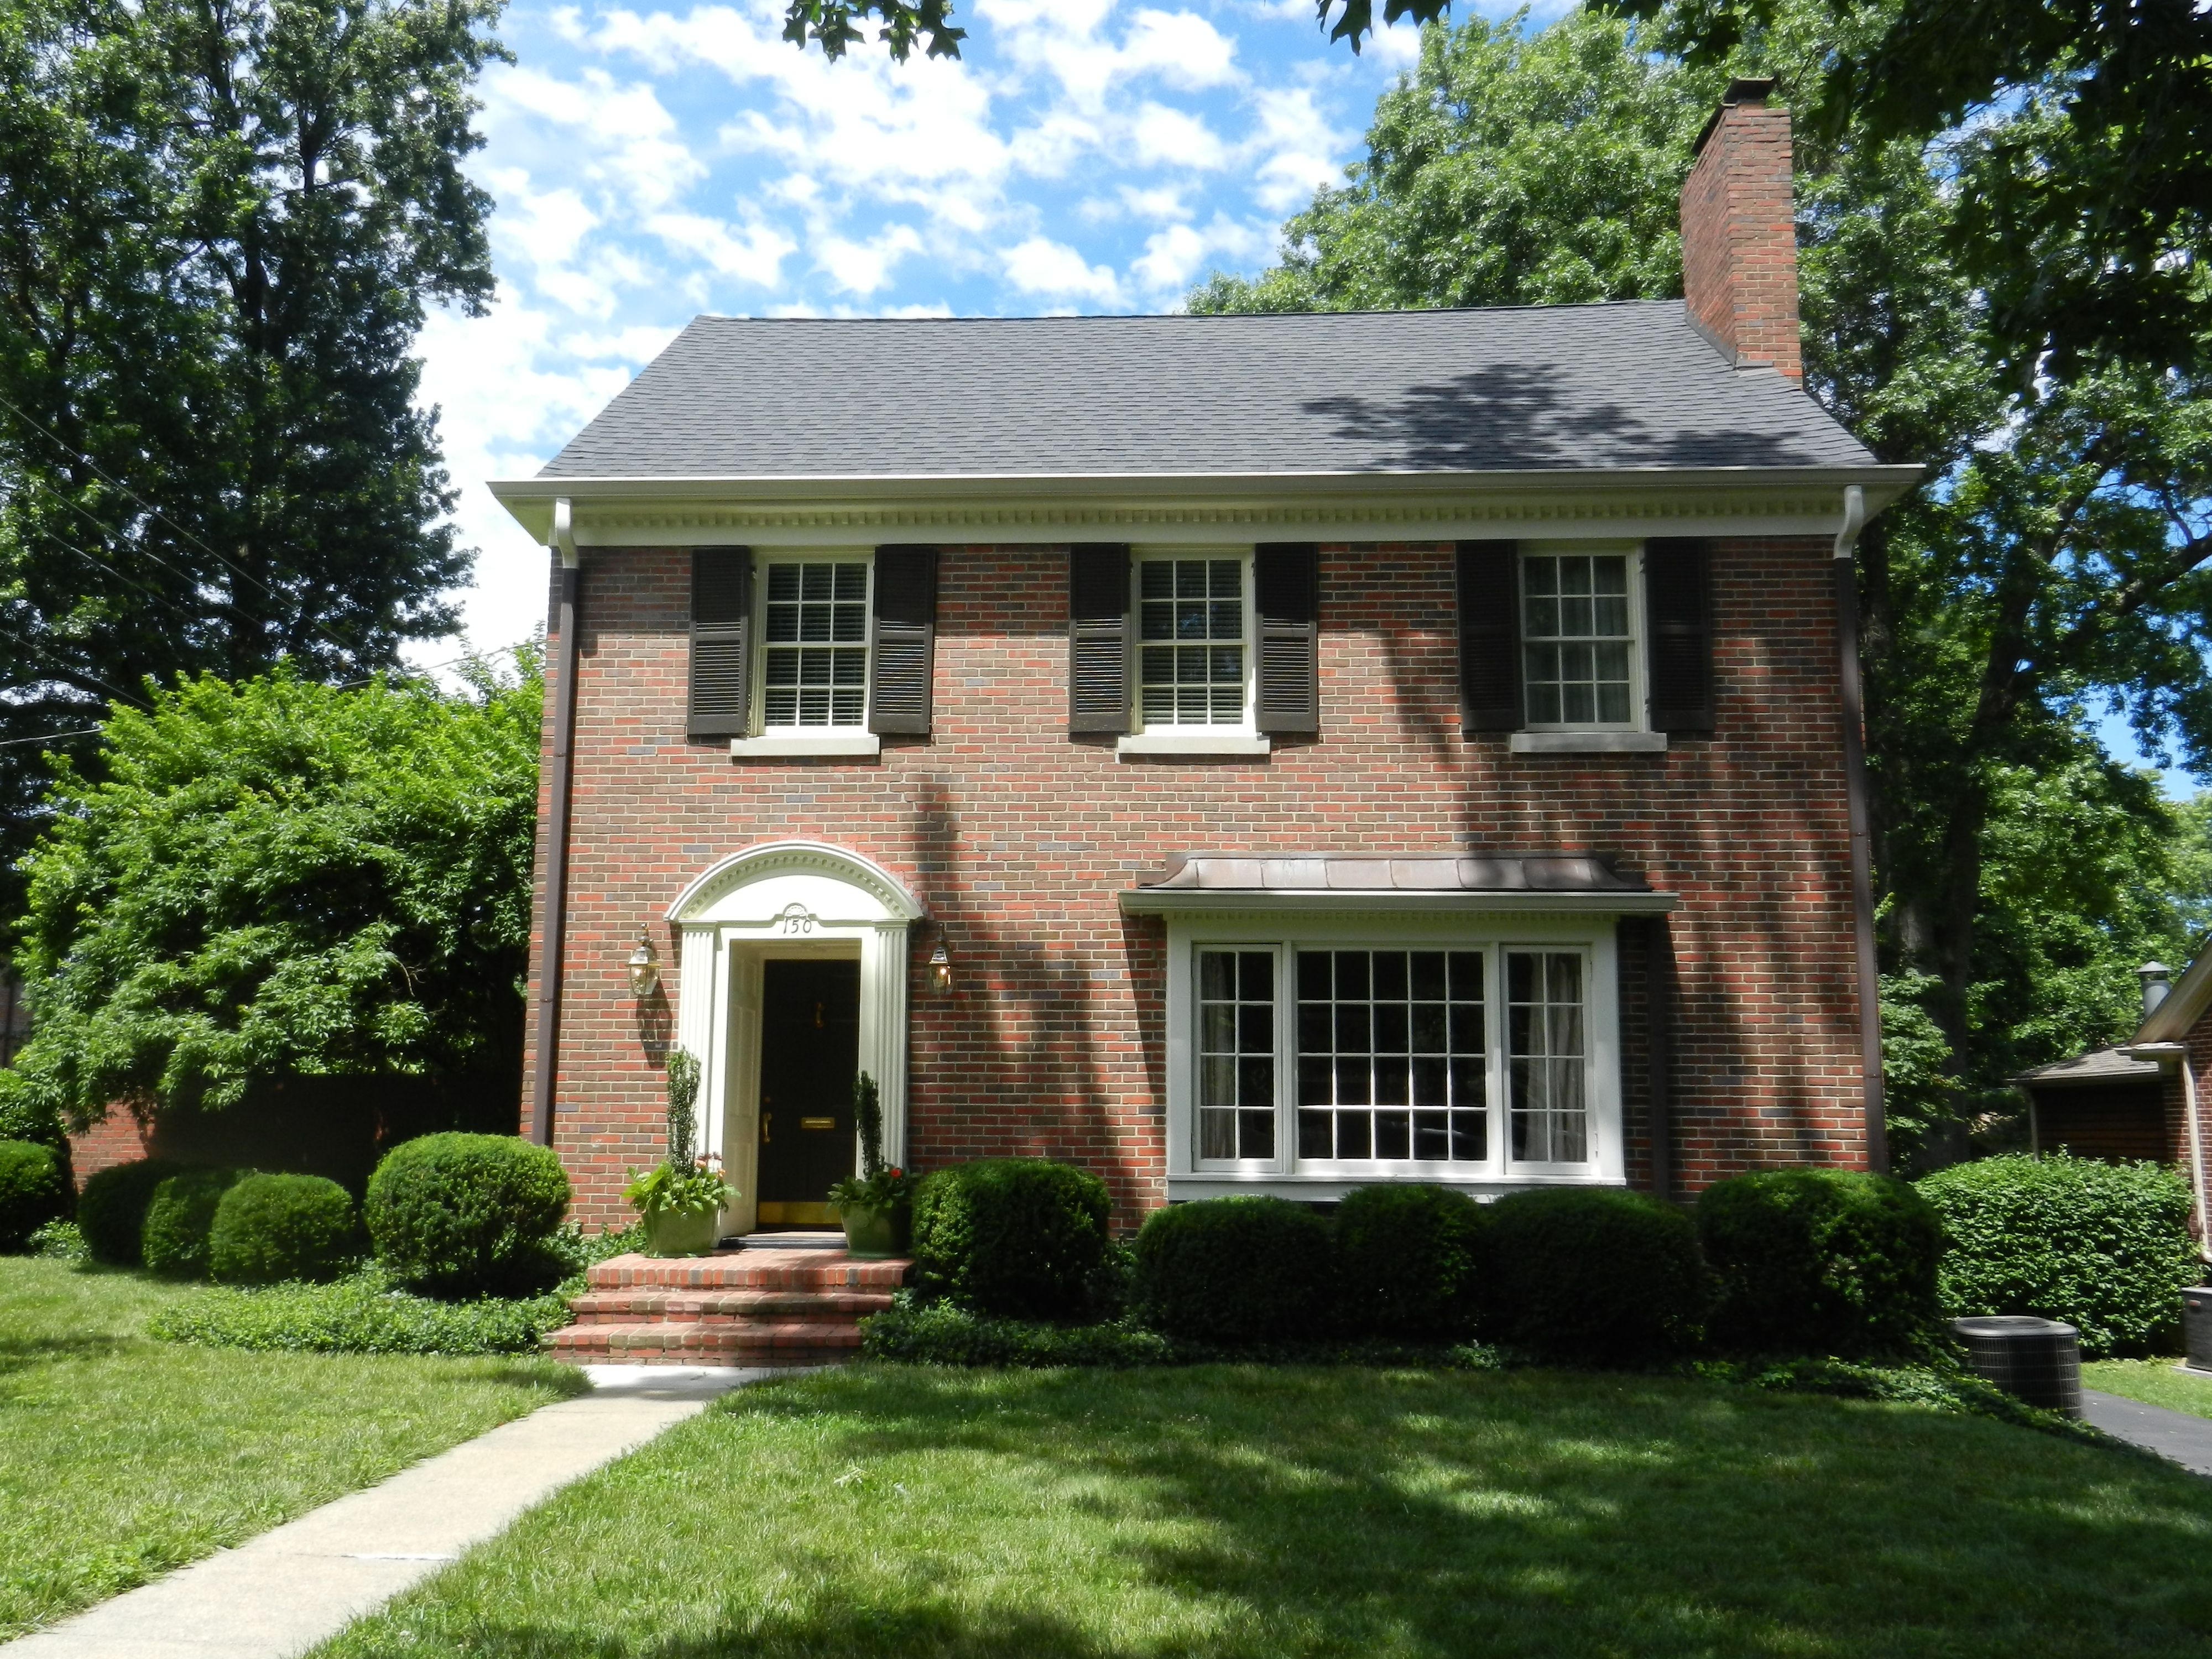 Brick federal style house google search home for Brick style homes